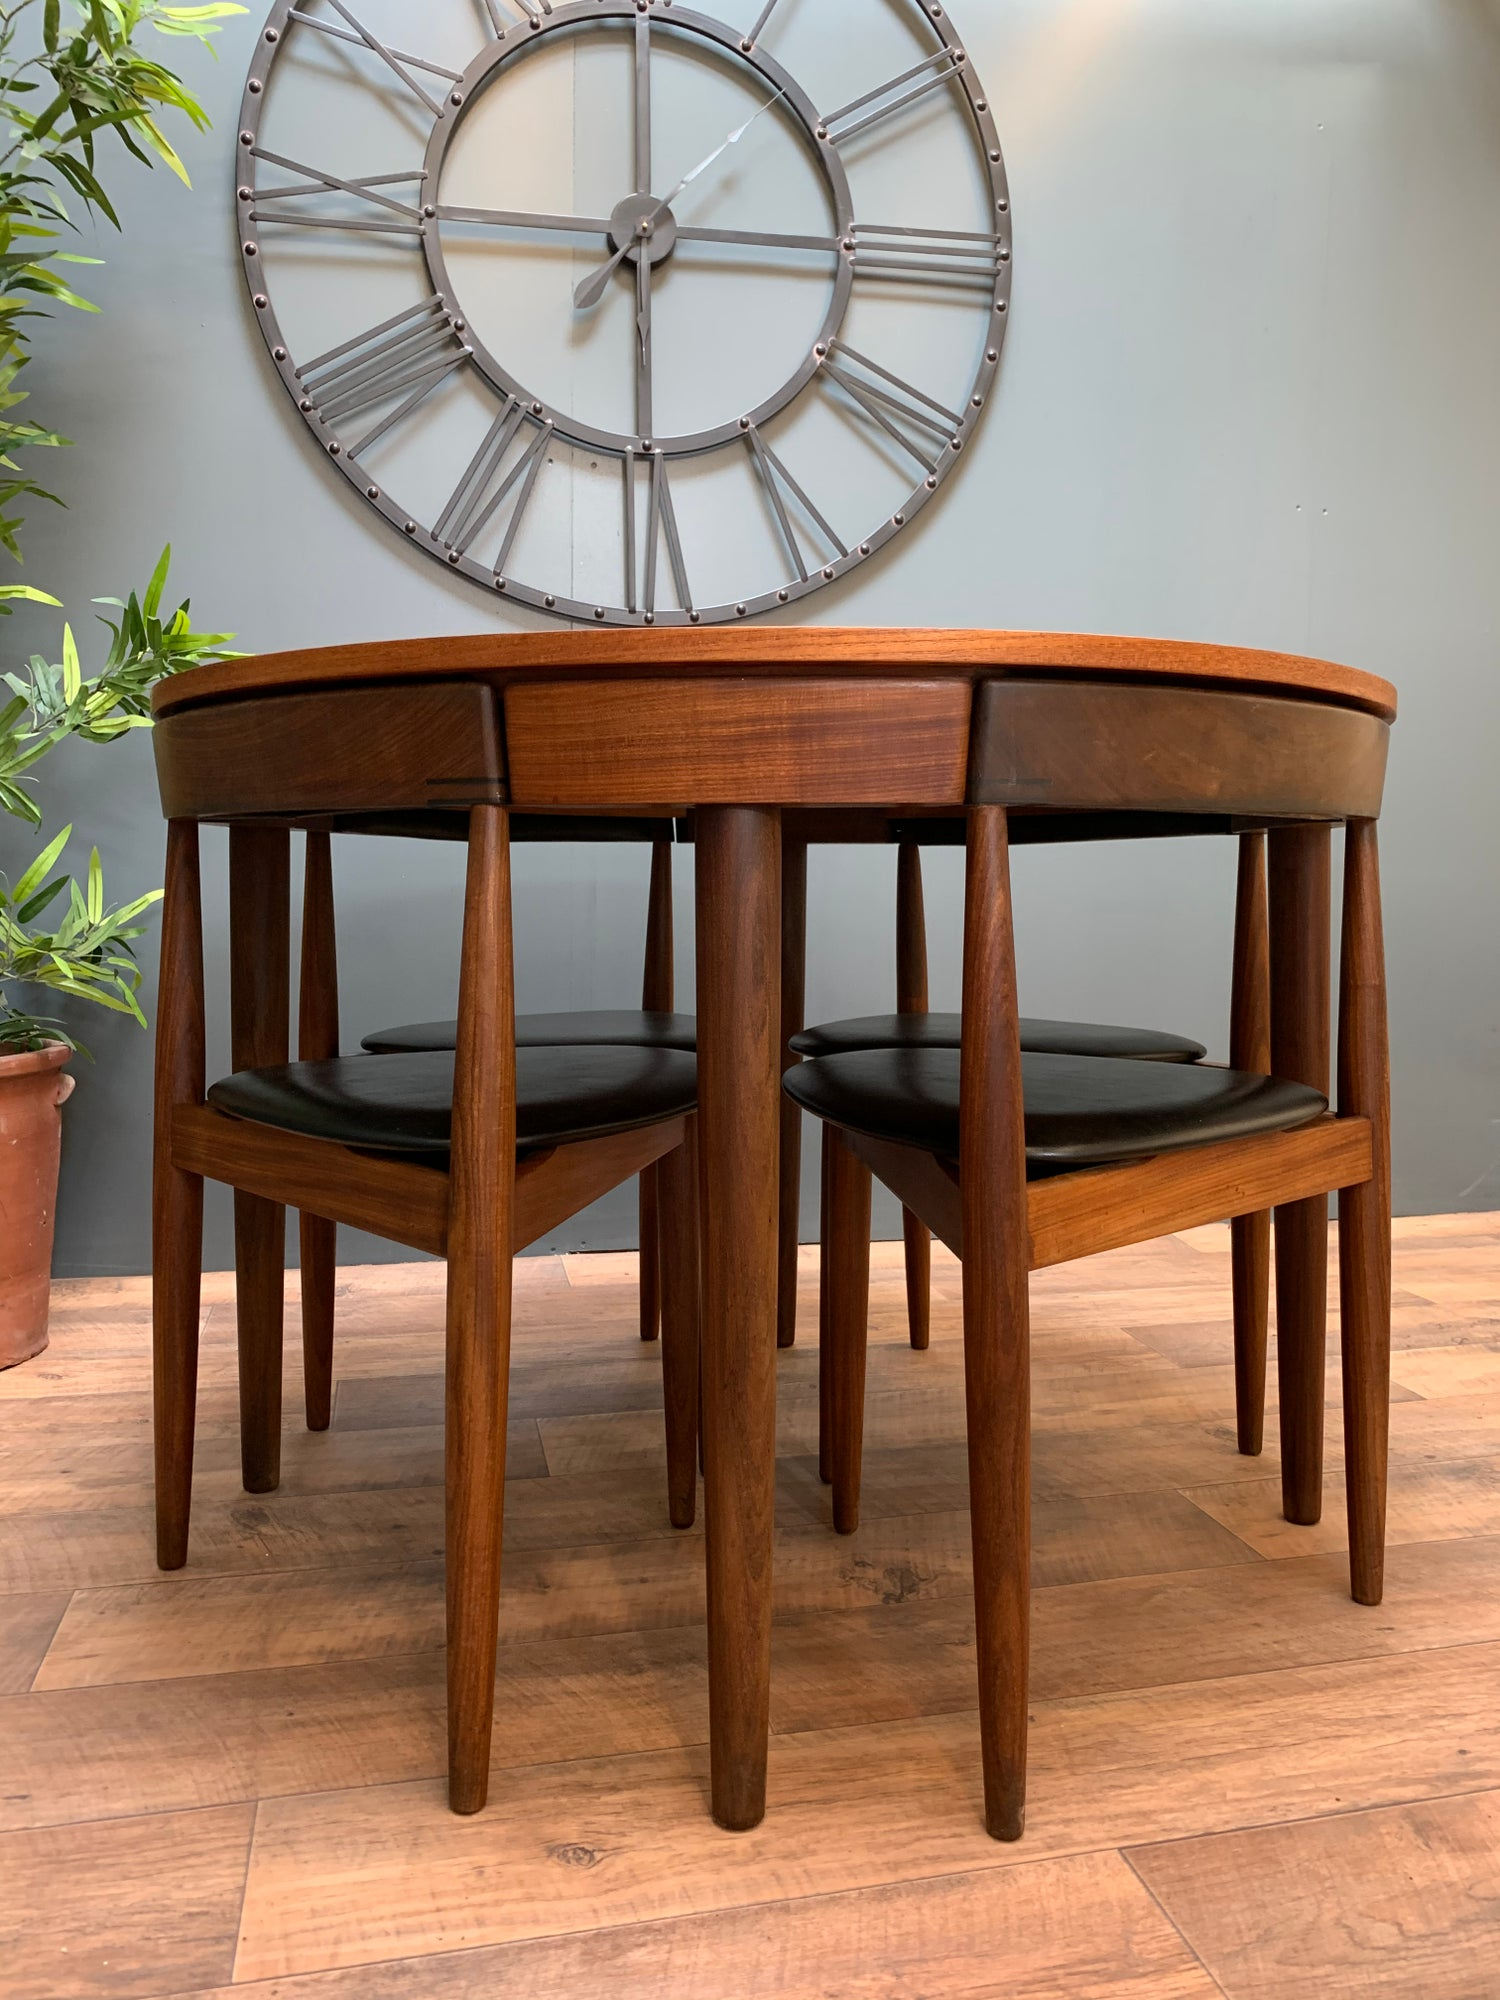 Image of Frem Rójle table and chairs